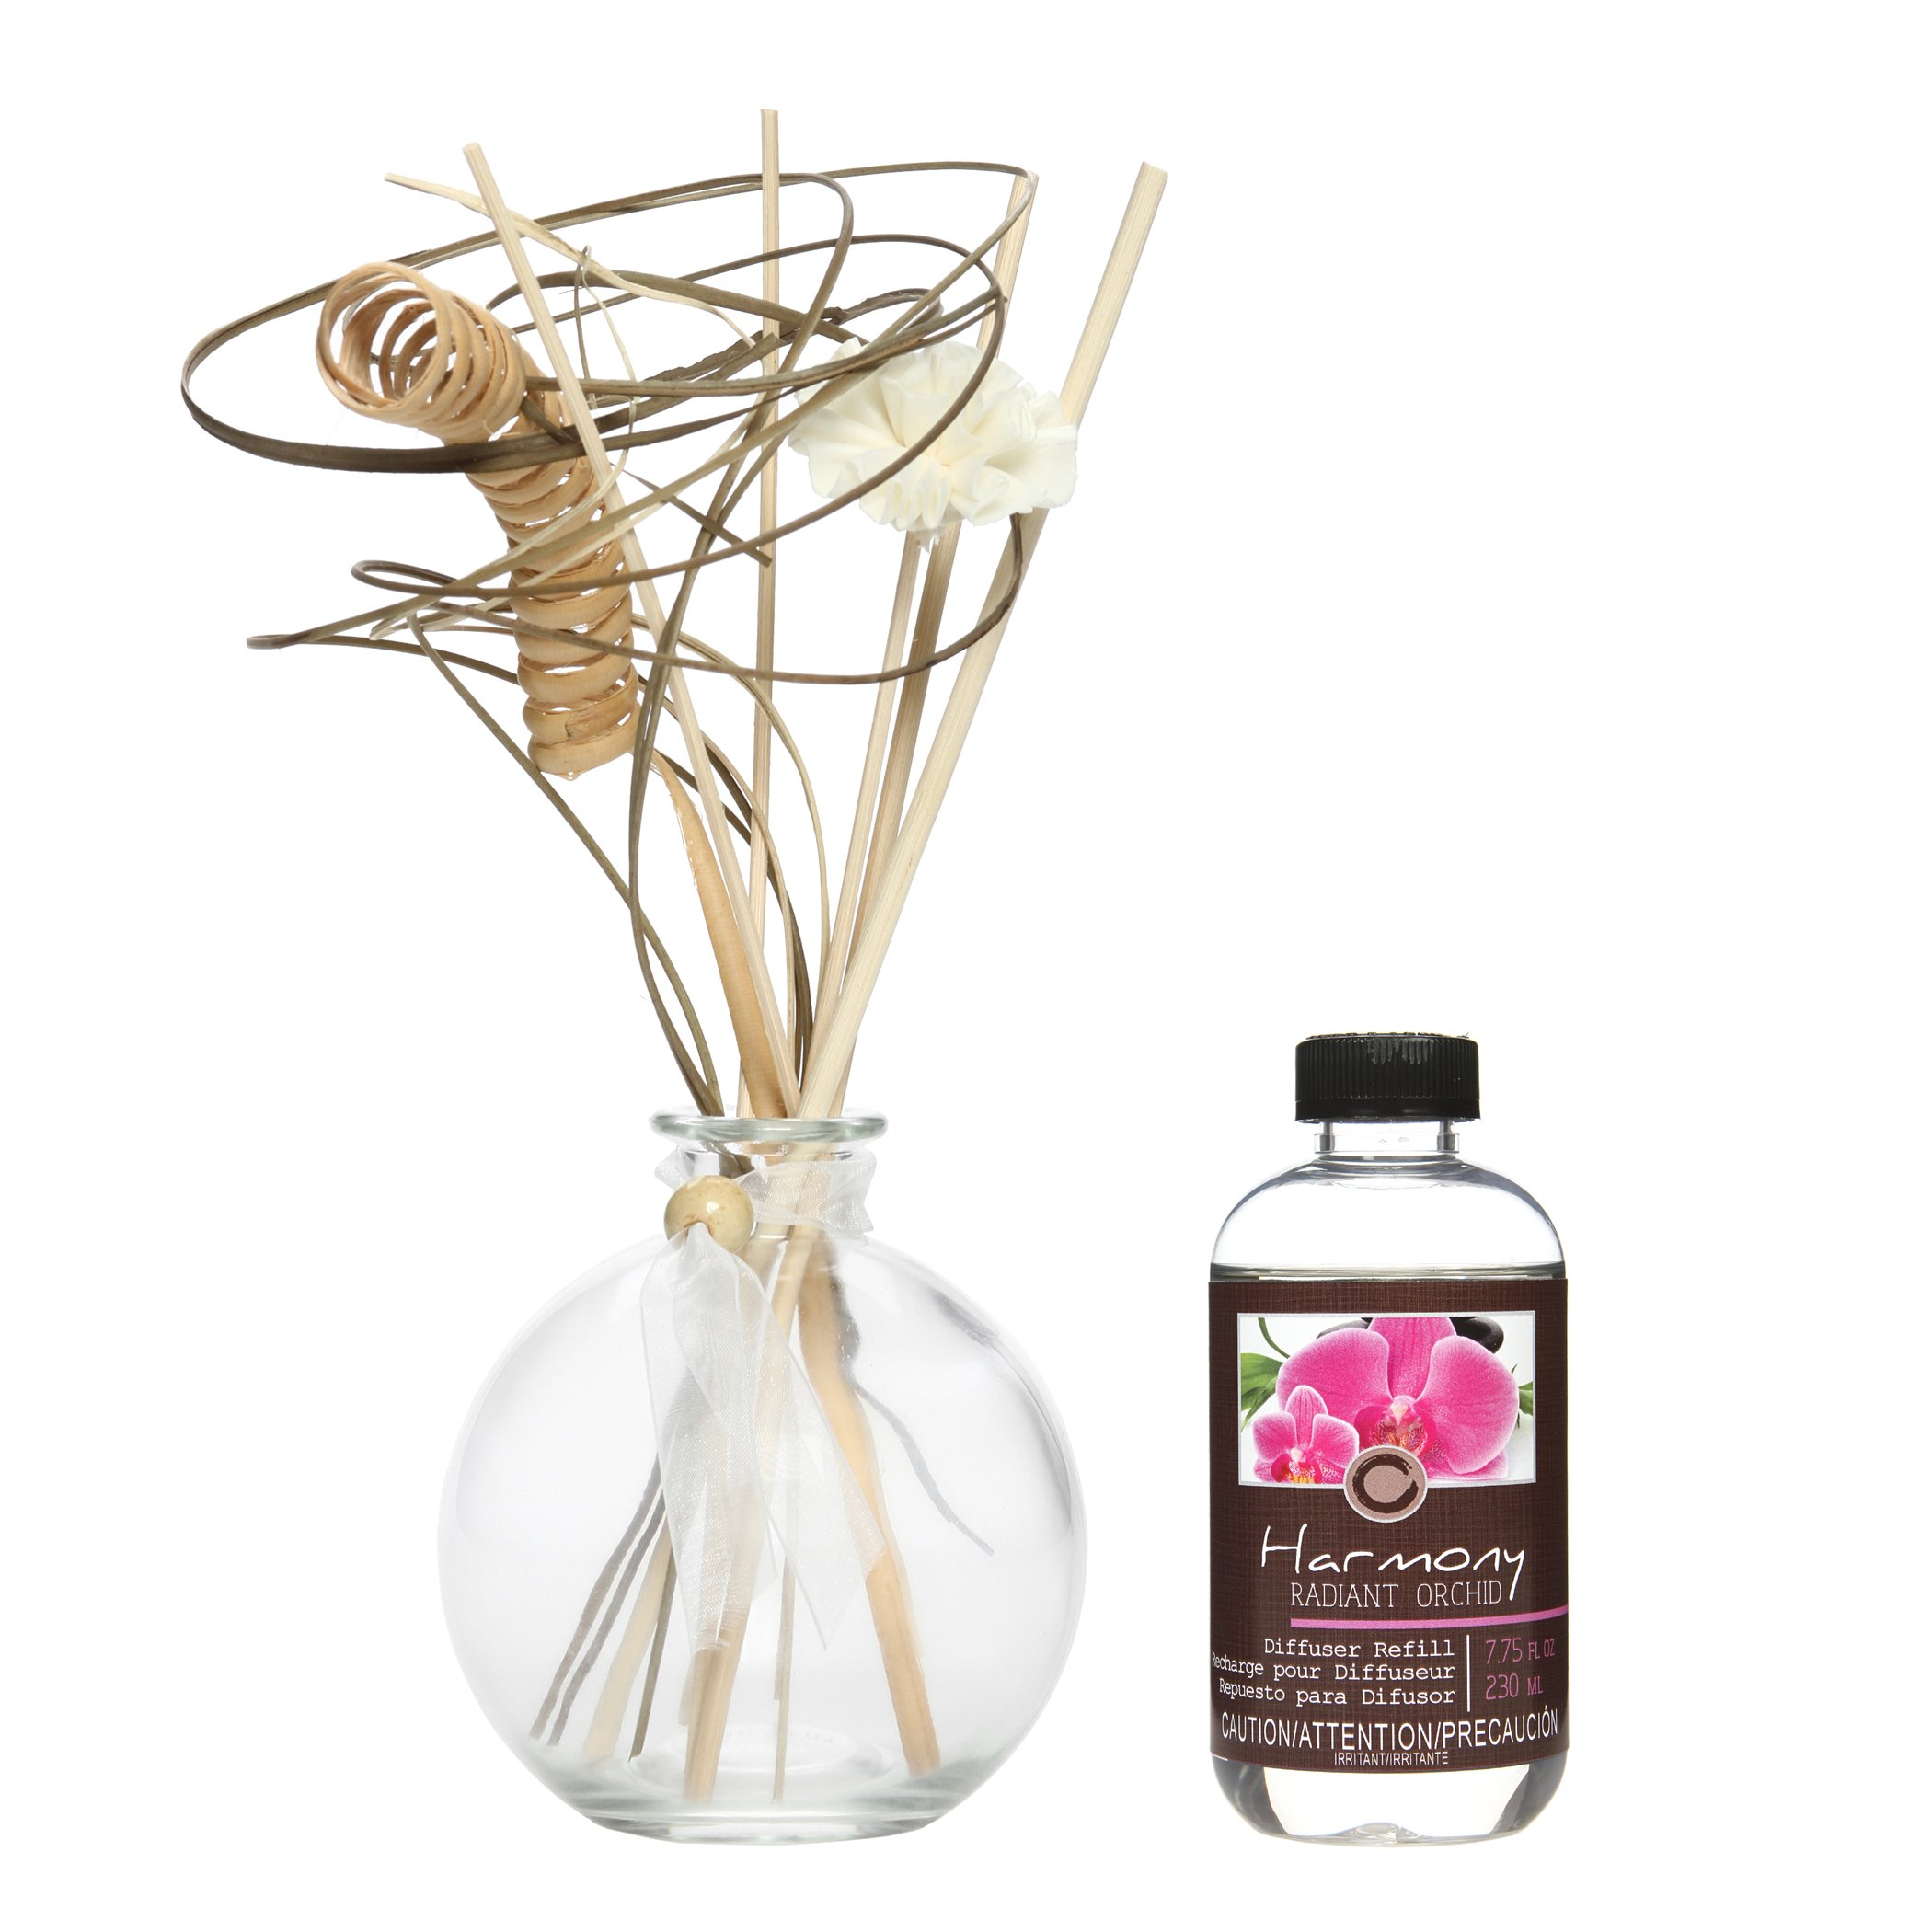 Hosley Aromatherapy Floral Radiant Orchid Scented 230 ML Diffuser Oil with 100 ML Glass Bottle and Reed Sticks. All in One! Bulk Buy. Ideal Gift for Weddings, spa, Reiki, Meditation, Bathroom O5